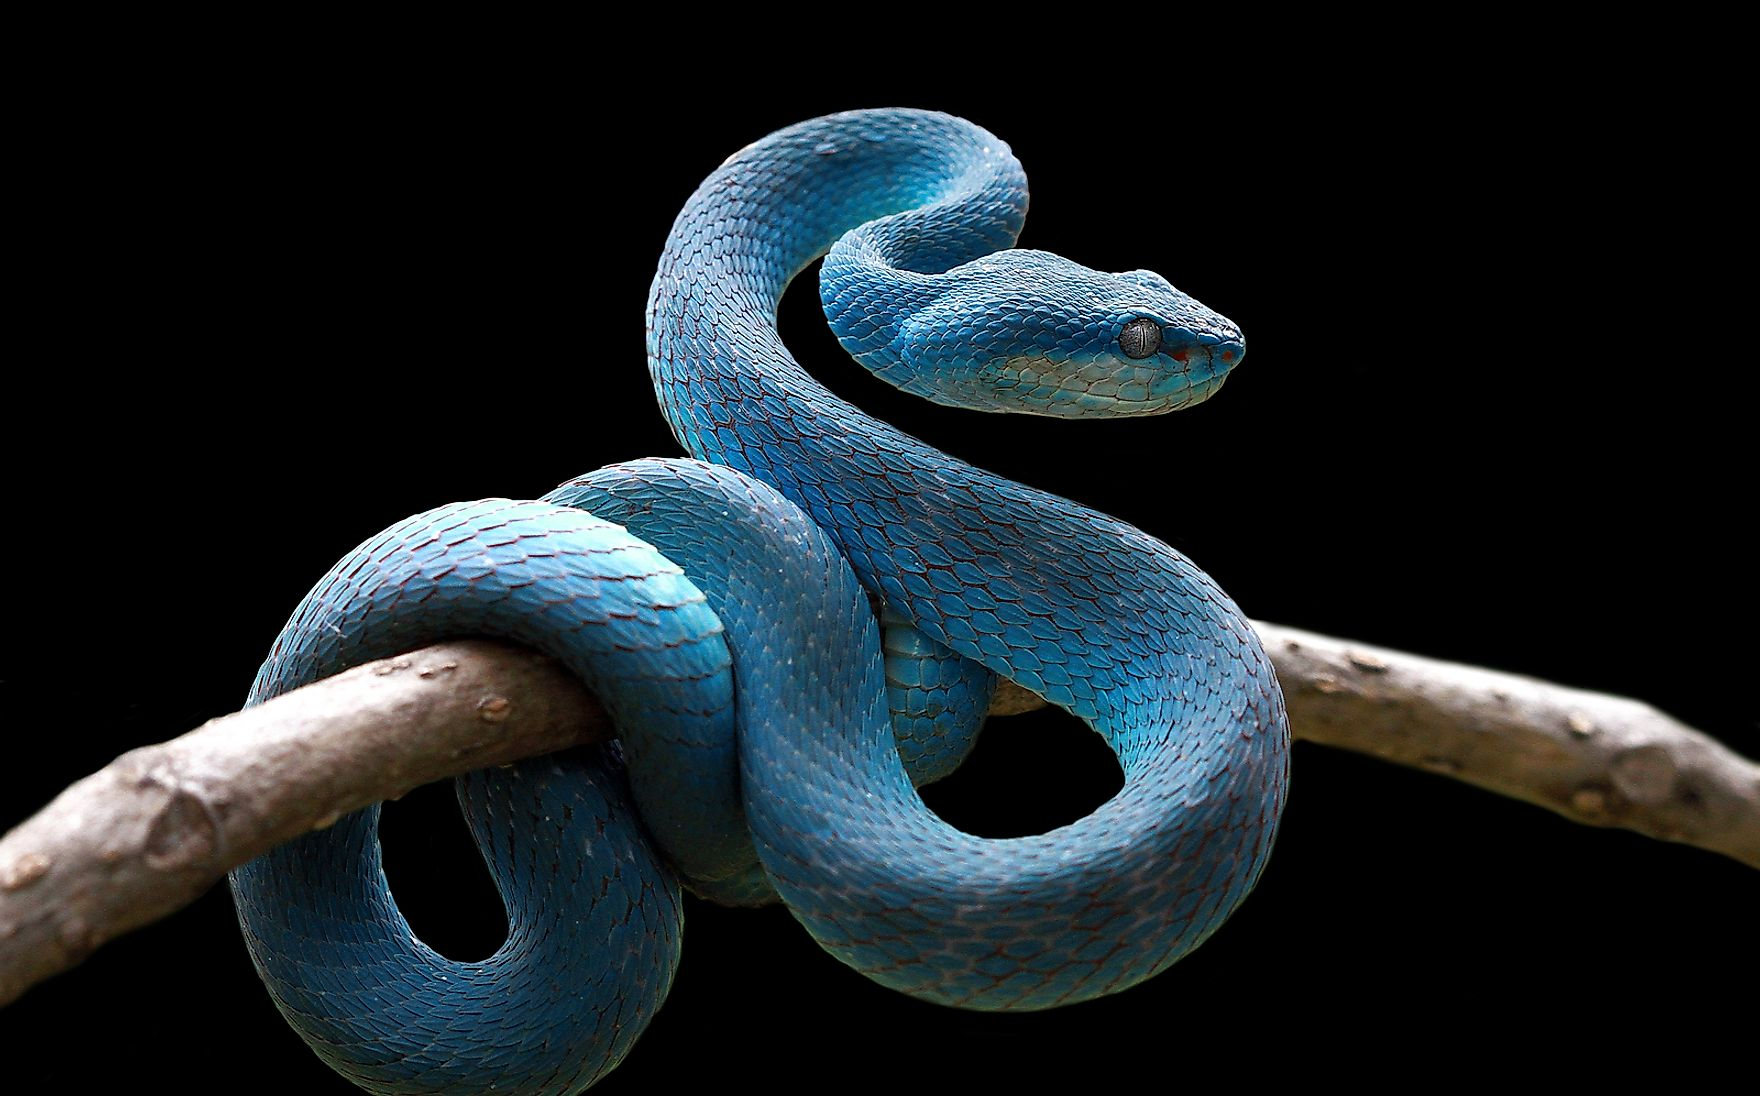 A blue viper on a branch.